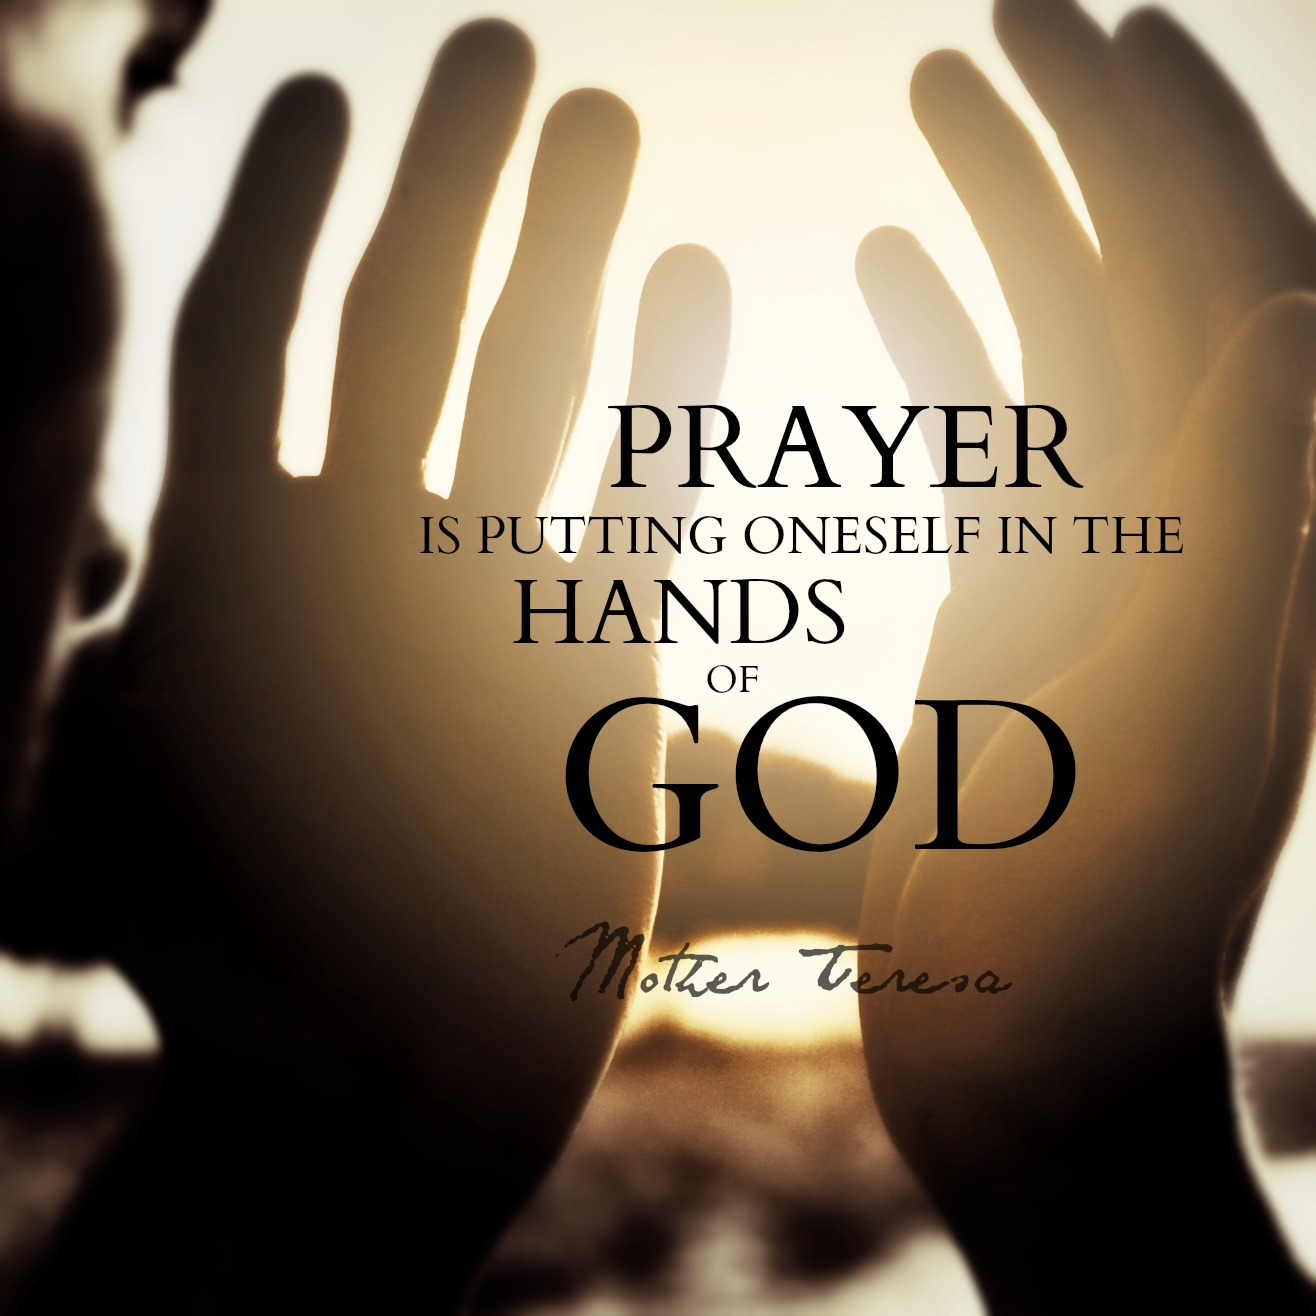 Prayer is putting oneself in the hands of God.